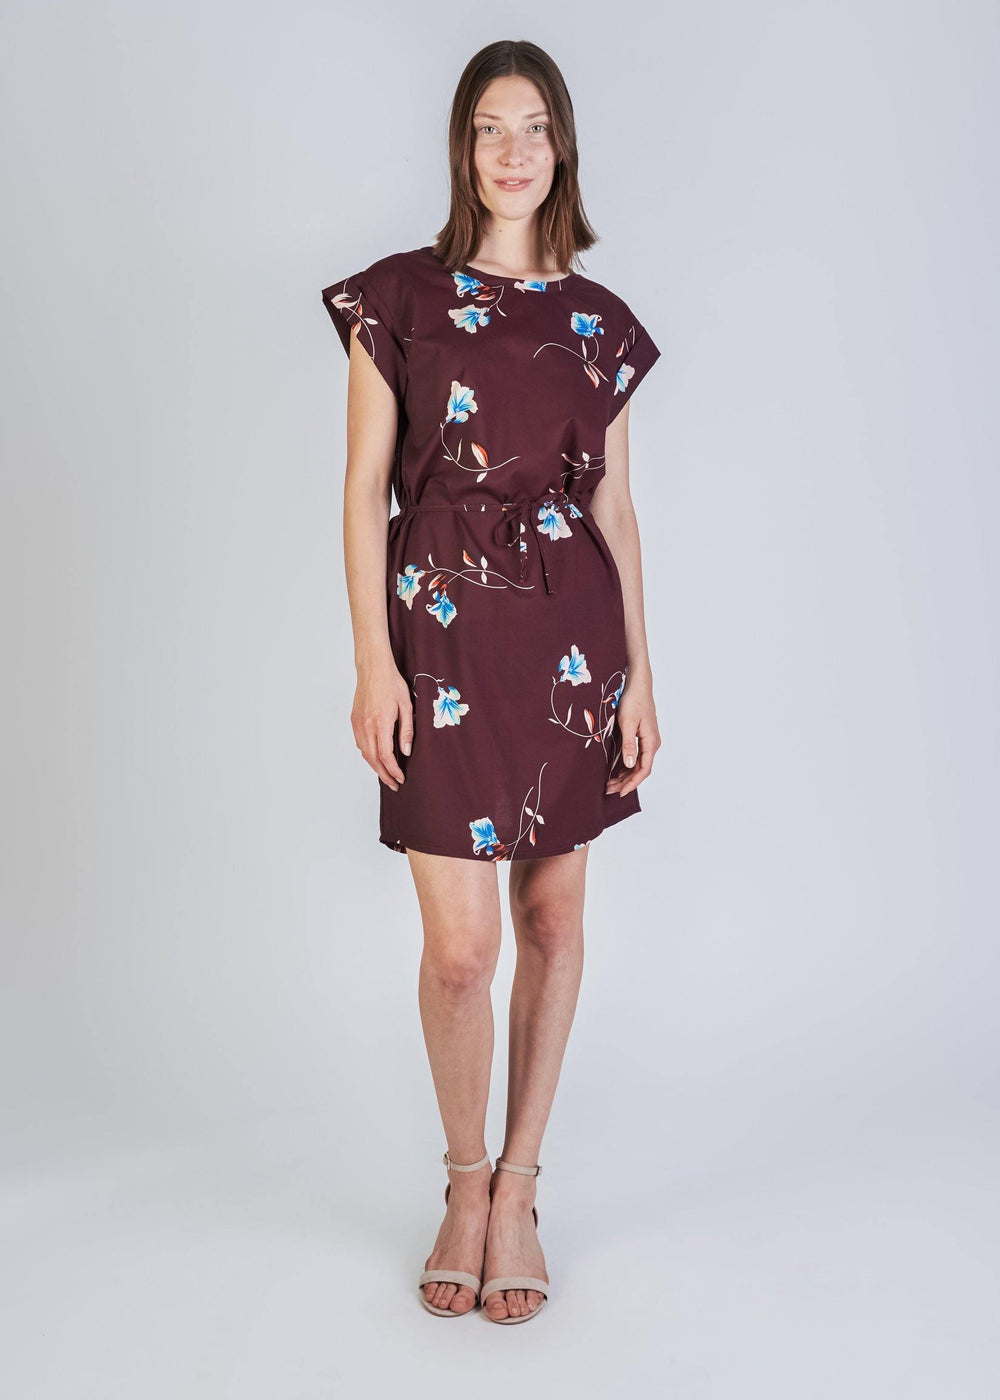 Givn BERLIN Nara Dress Burgundy (Flowers)